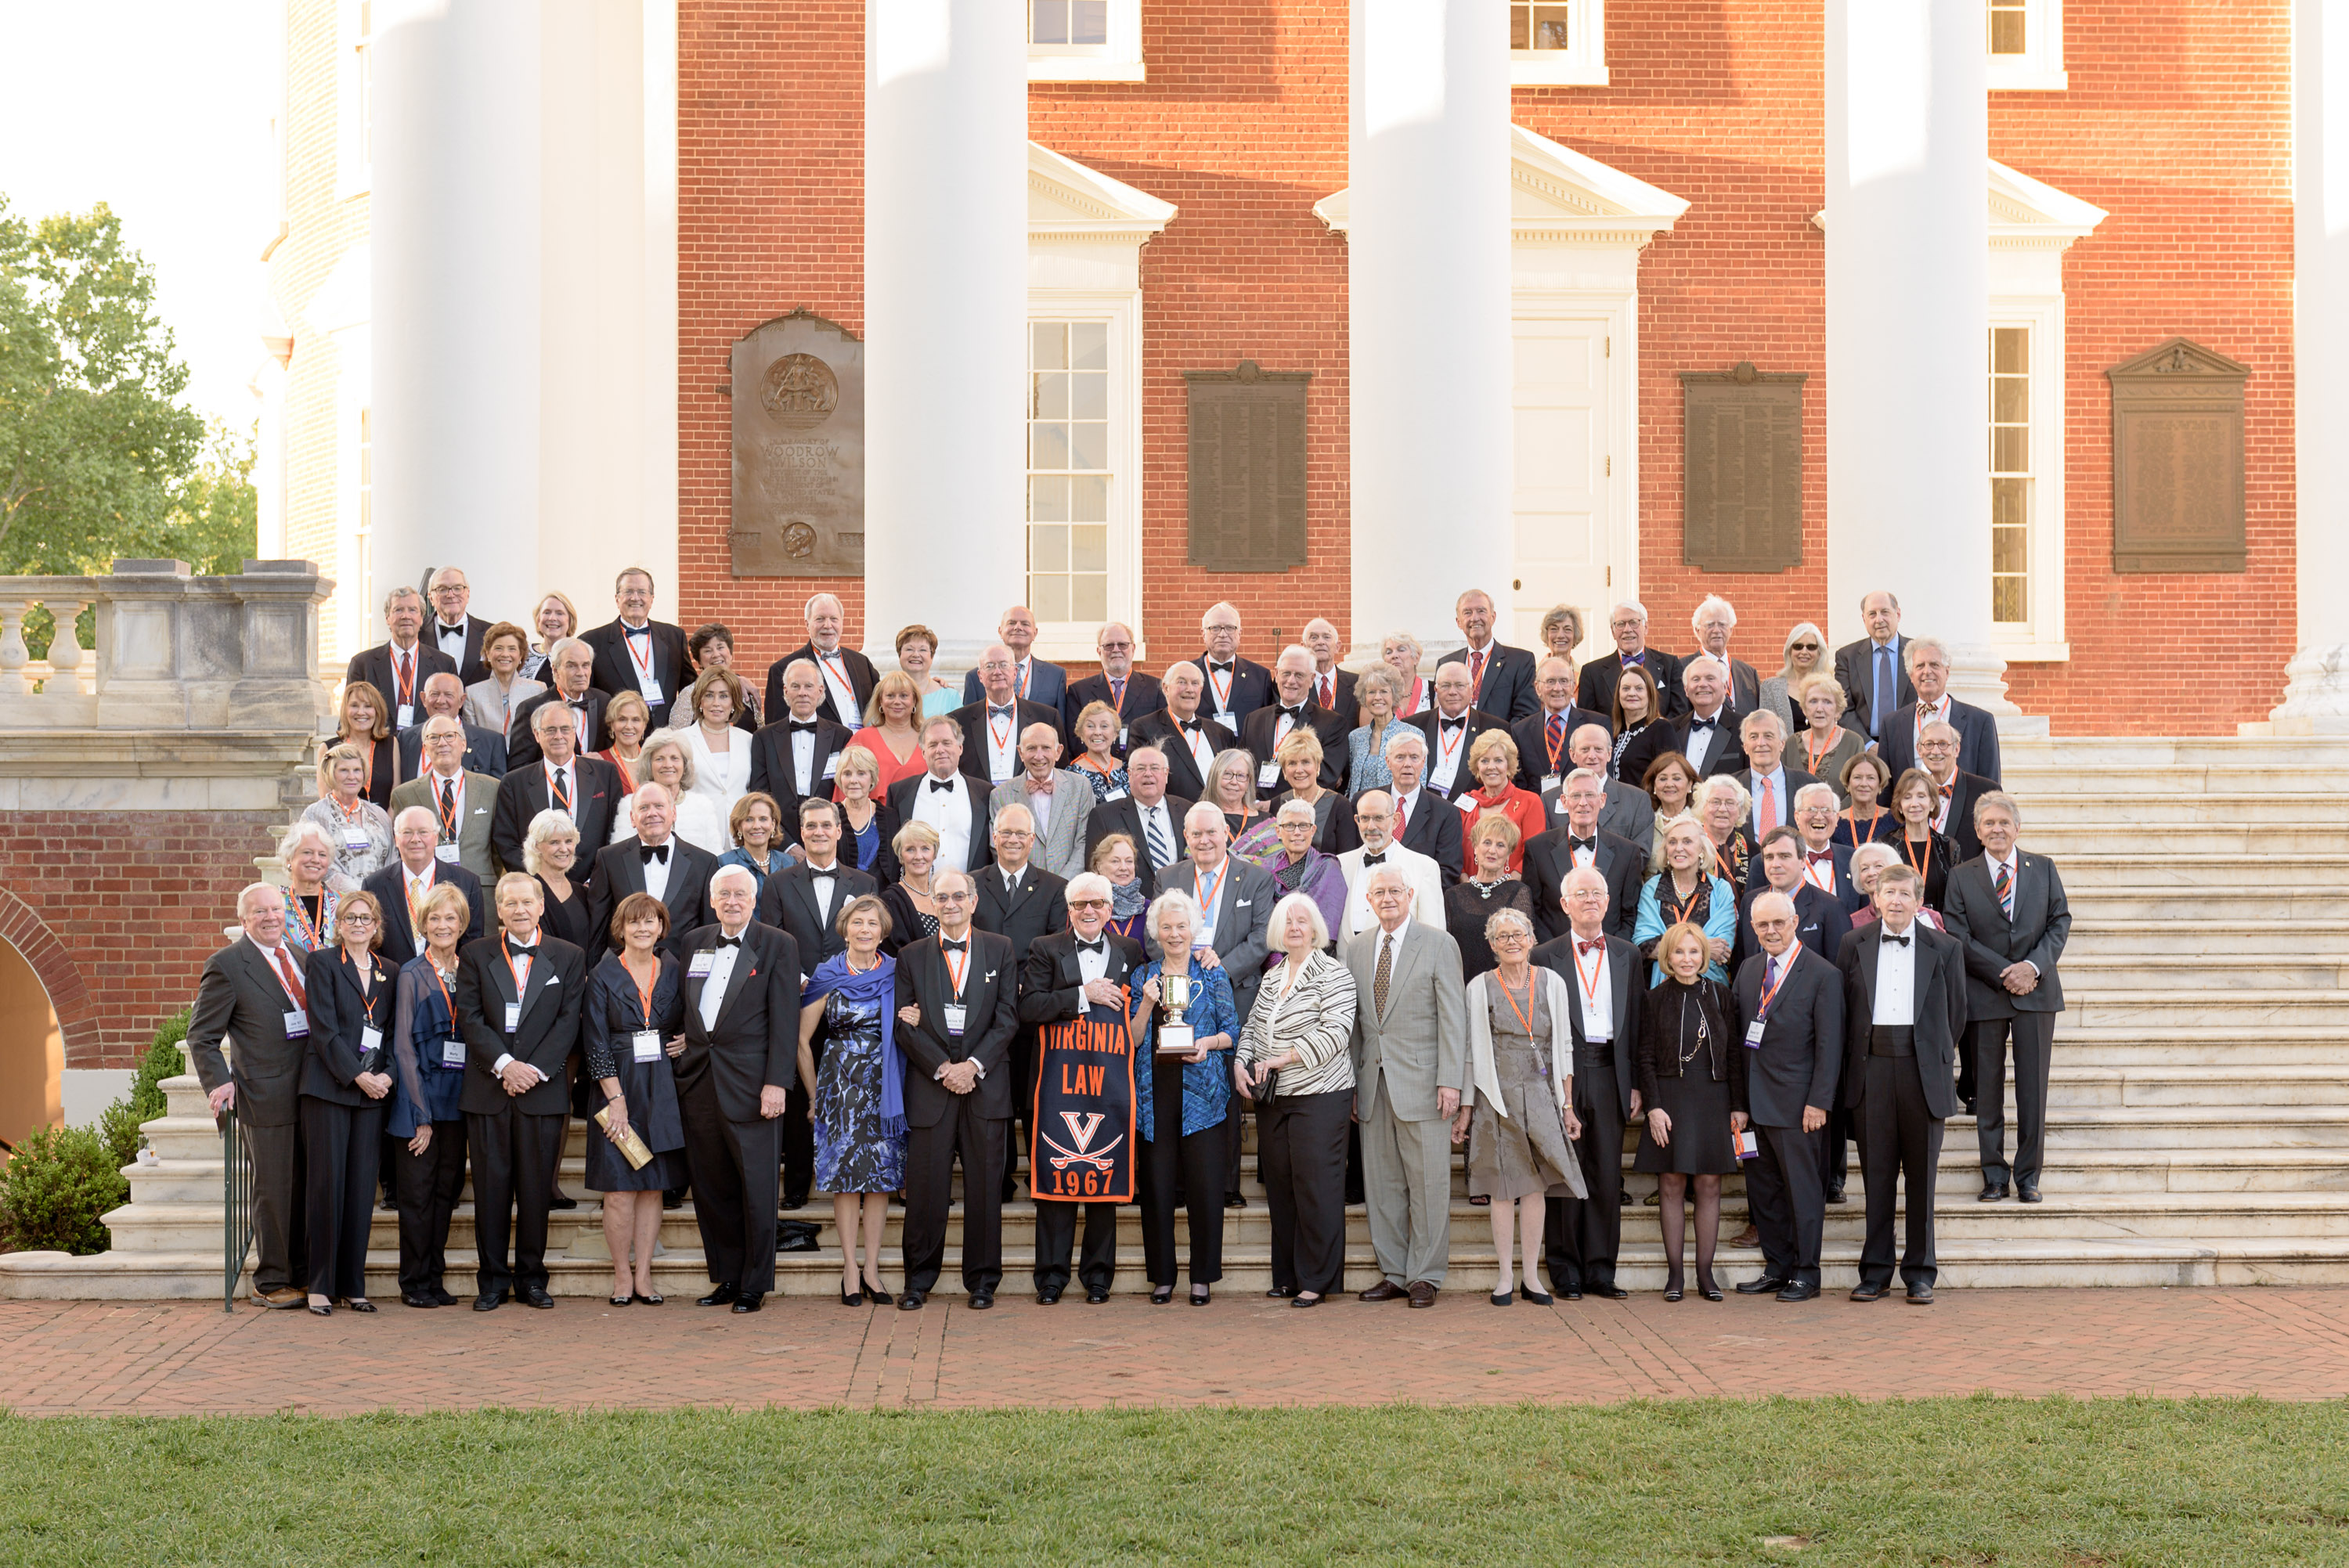 Class of 1967 alums at Law Alumni Weekend